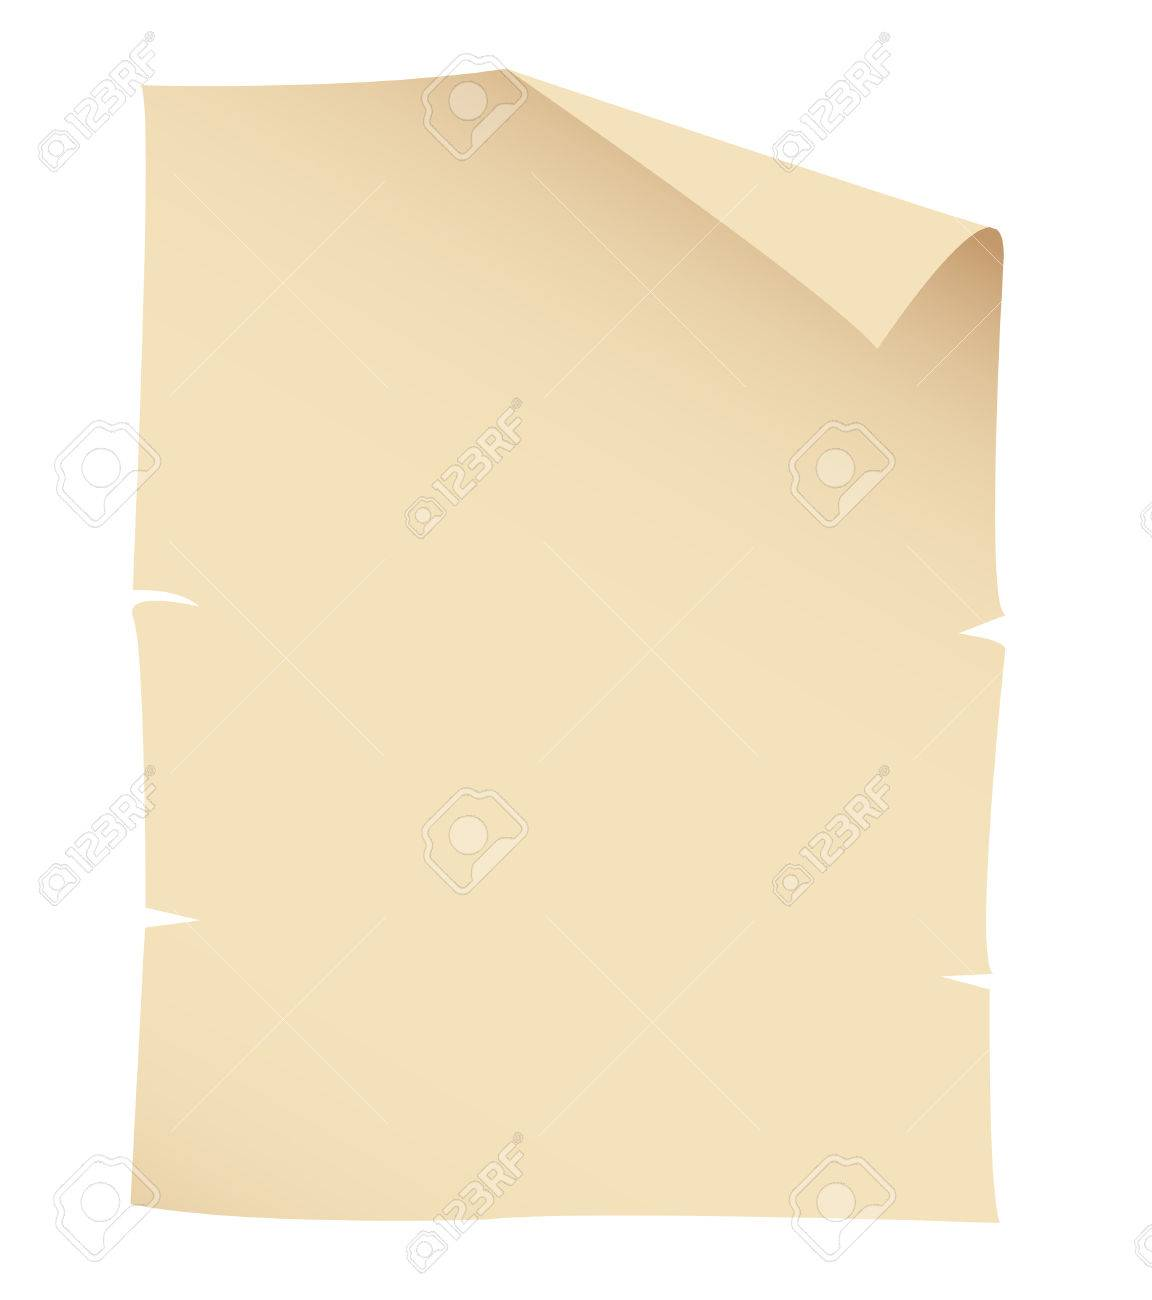 Illustration of Old Paper Banner isolated on a white background Stock Vector - 23637994